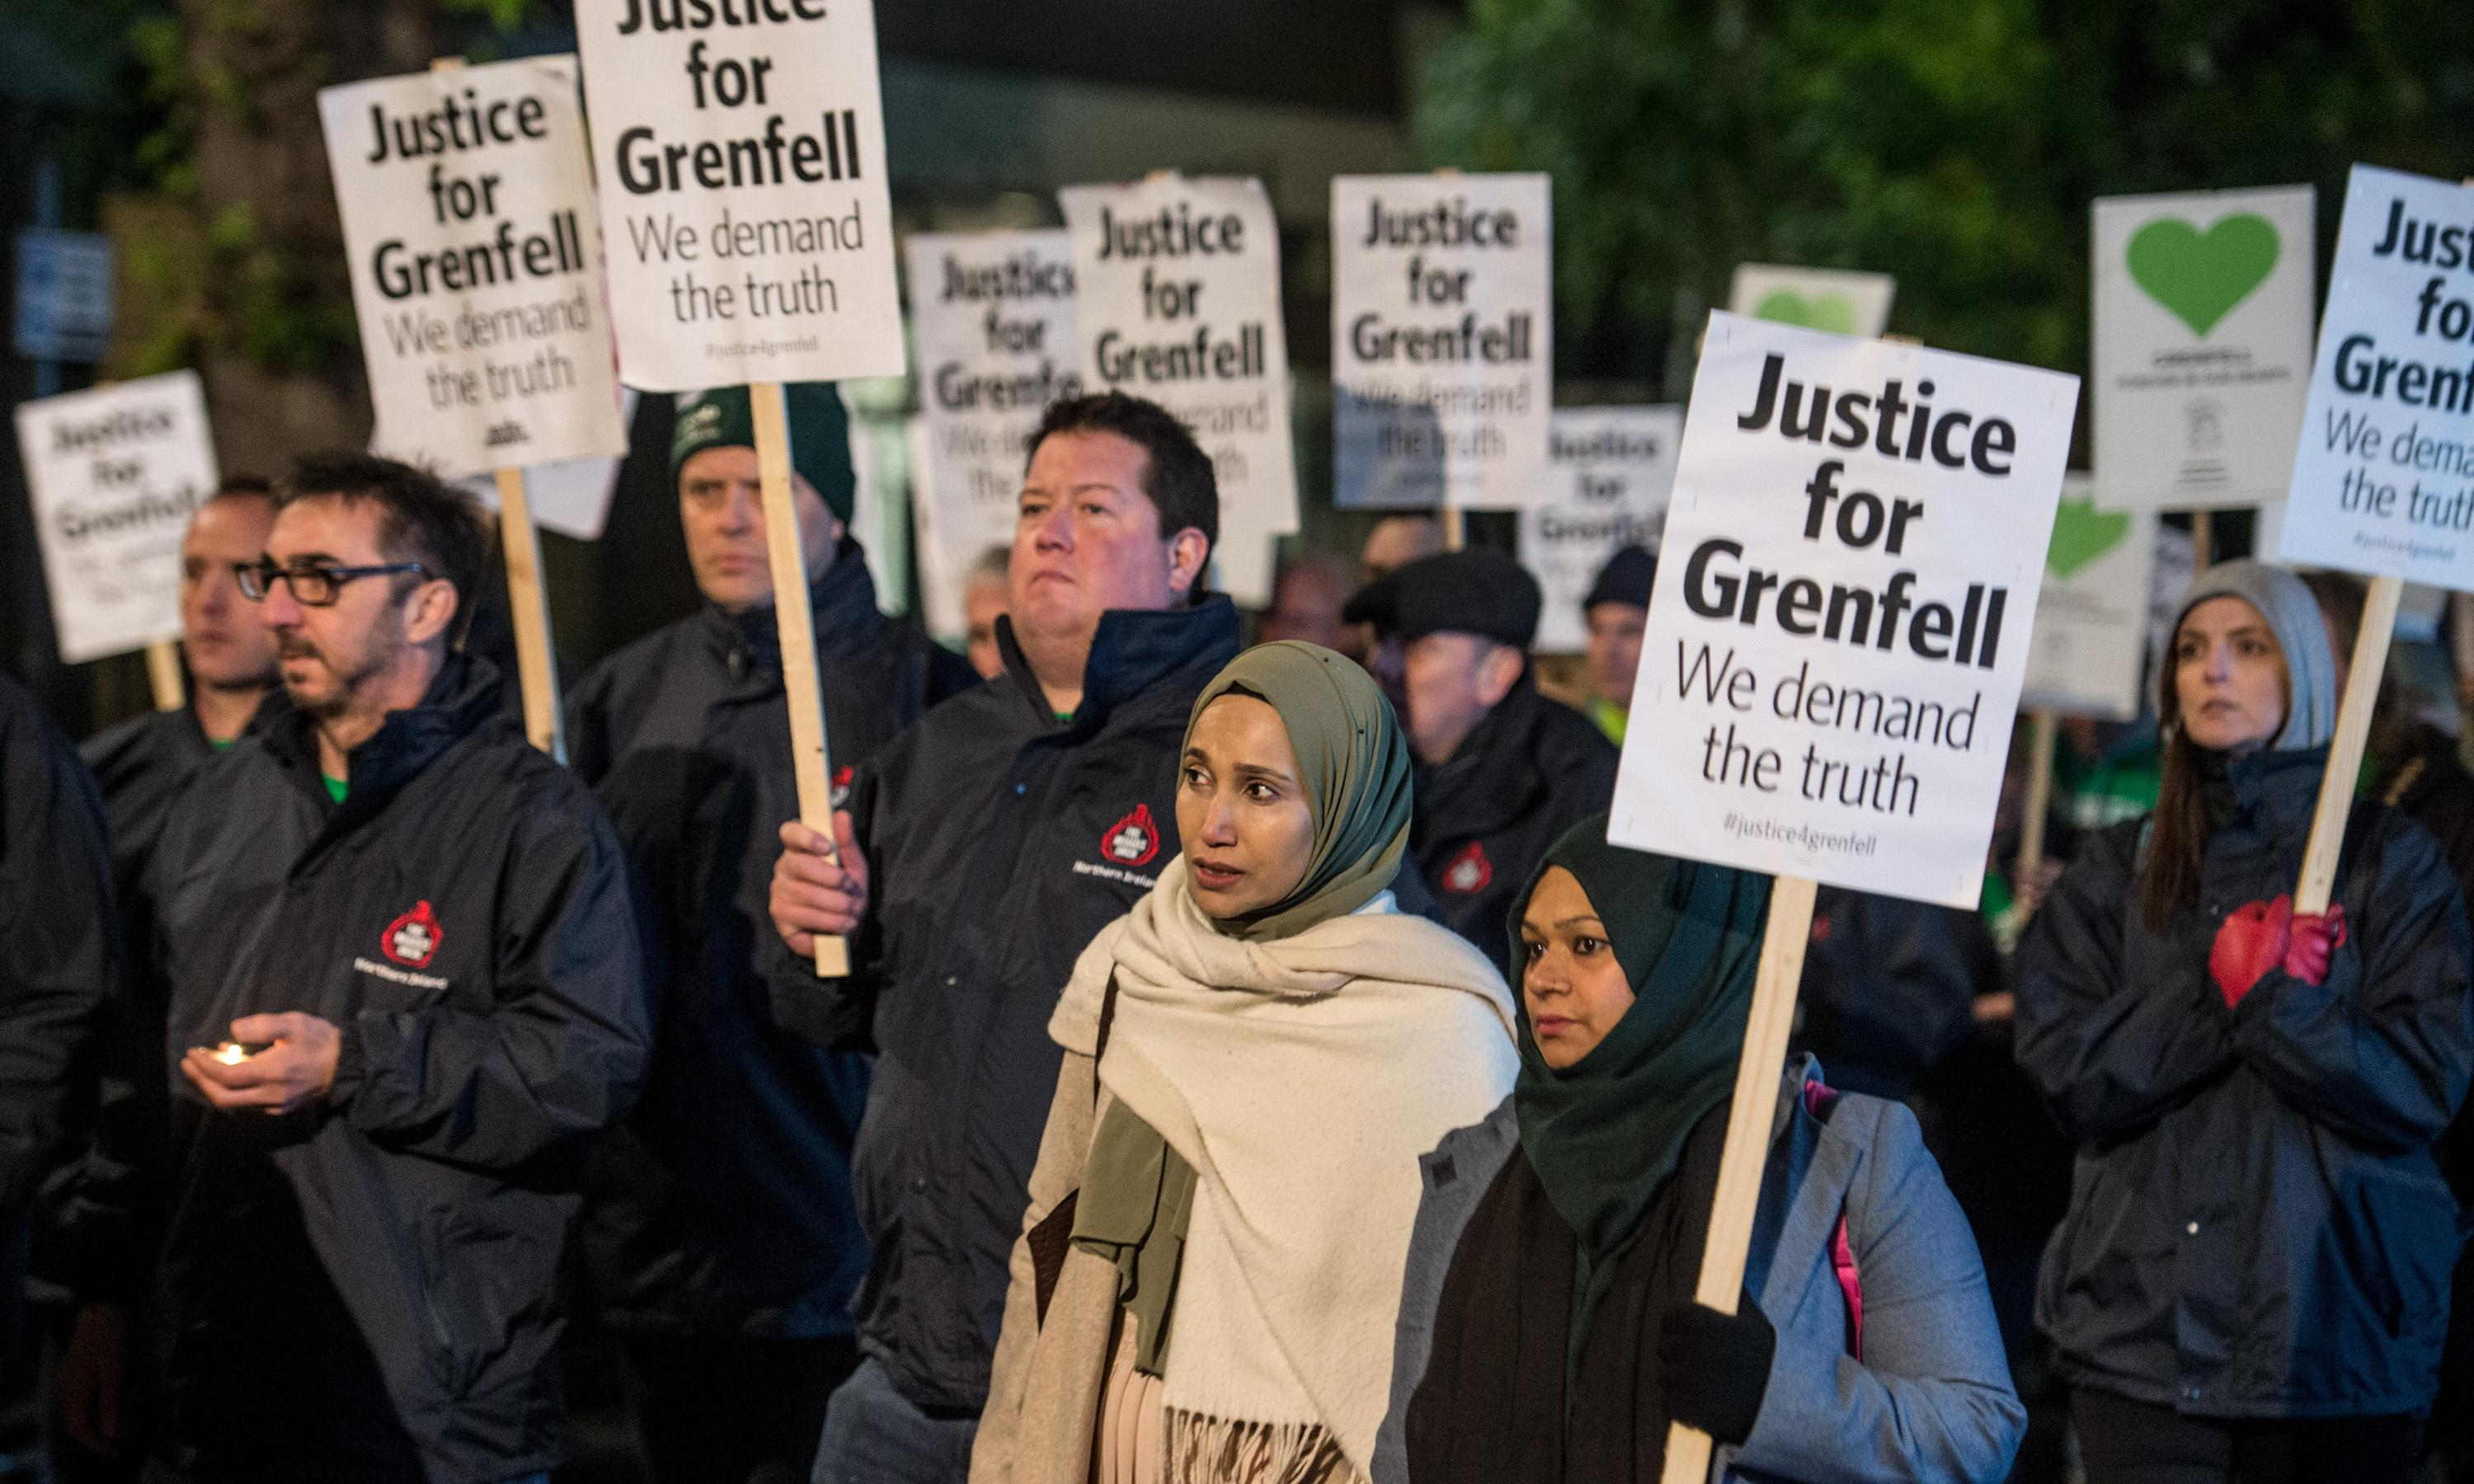 Grenfell inquiry: Hillsborough families back calls for PM to ditch panelist